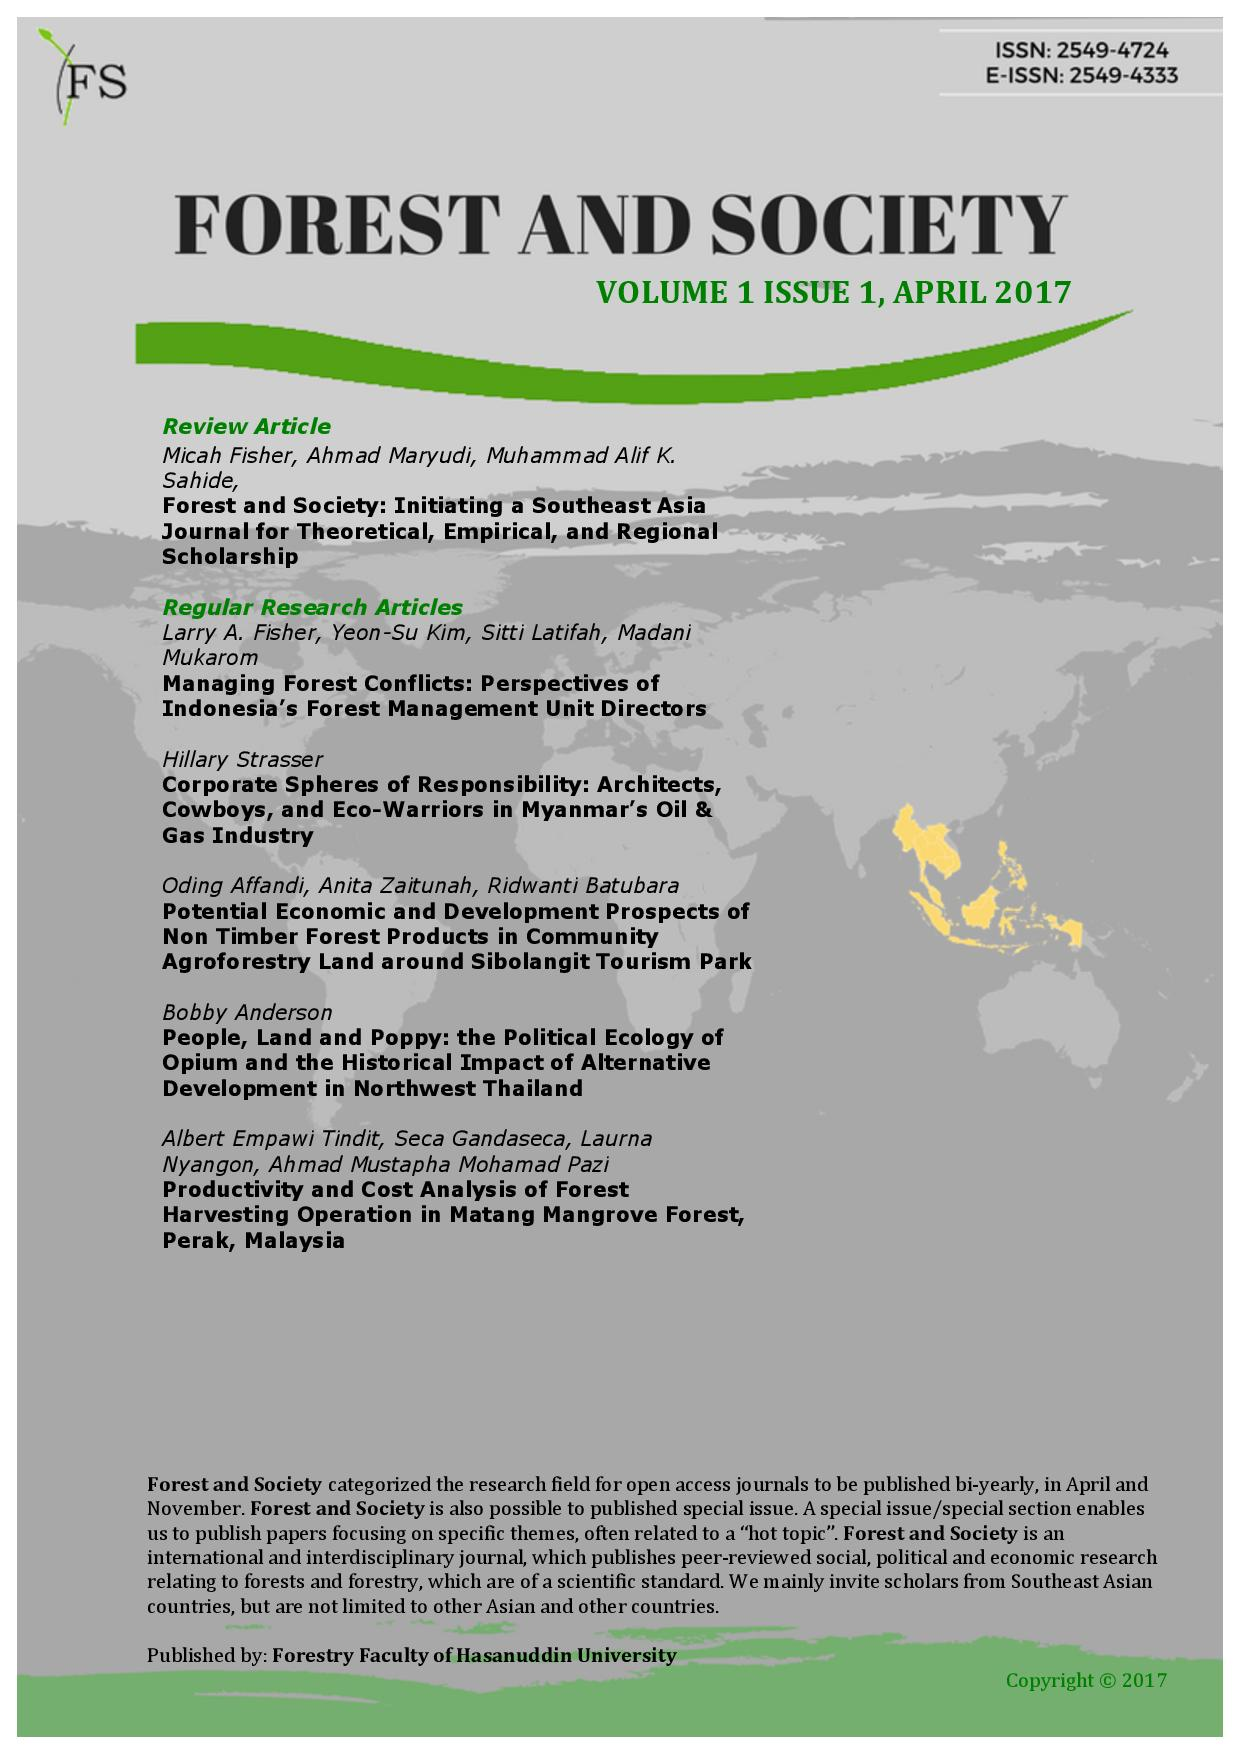 Social Forestry – why and for whom? A comparison of policies in Vietnam and Indonesia